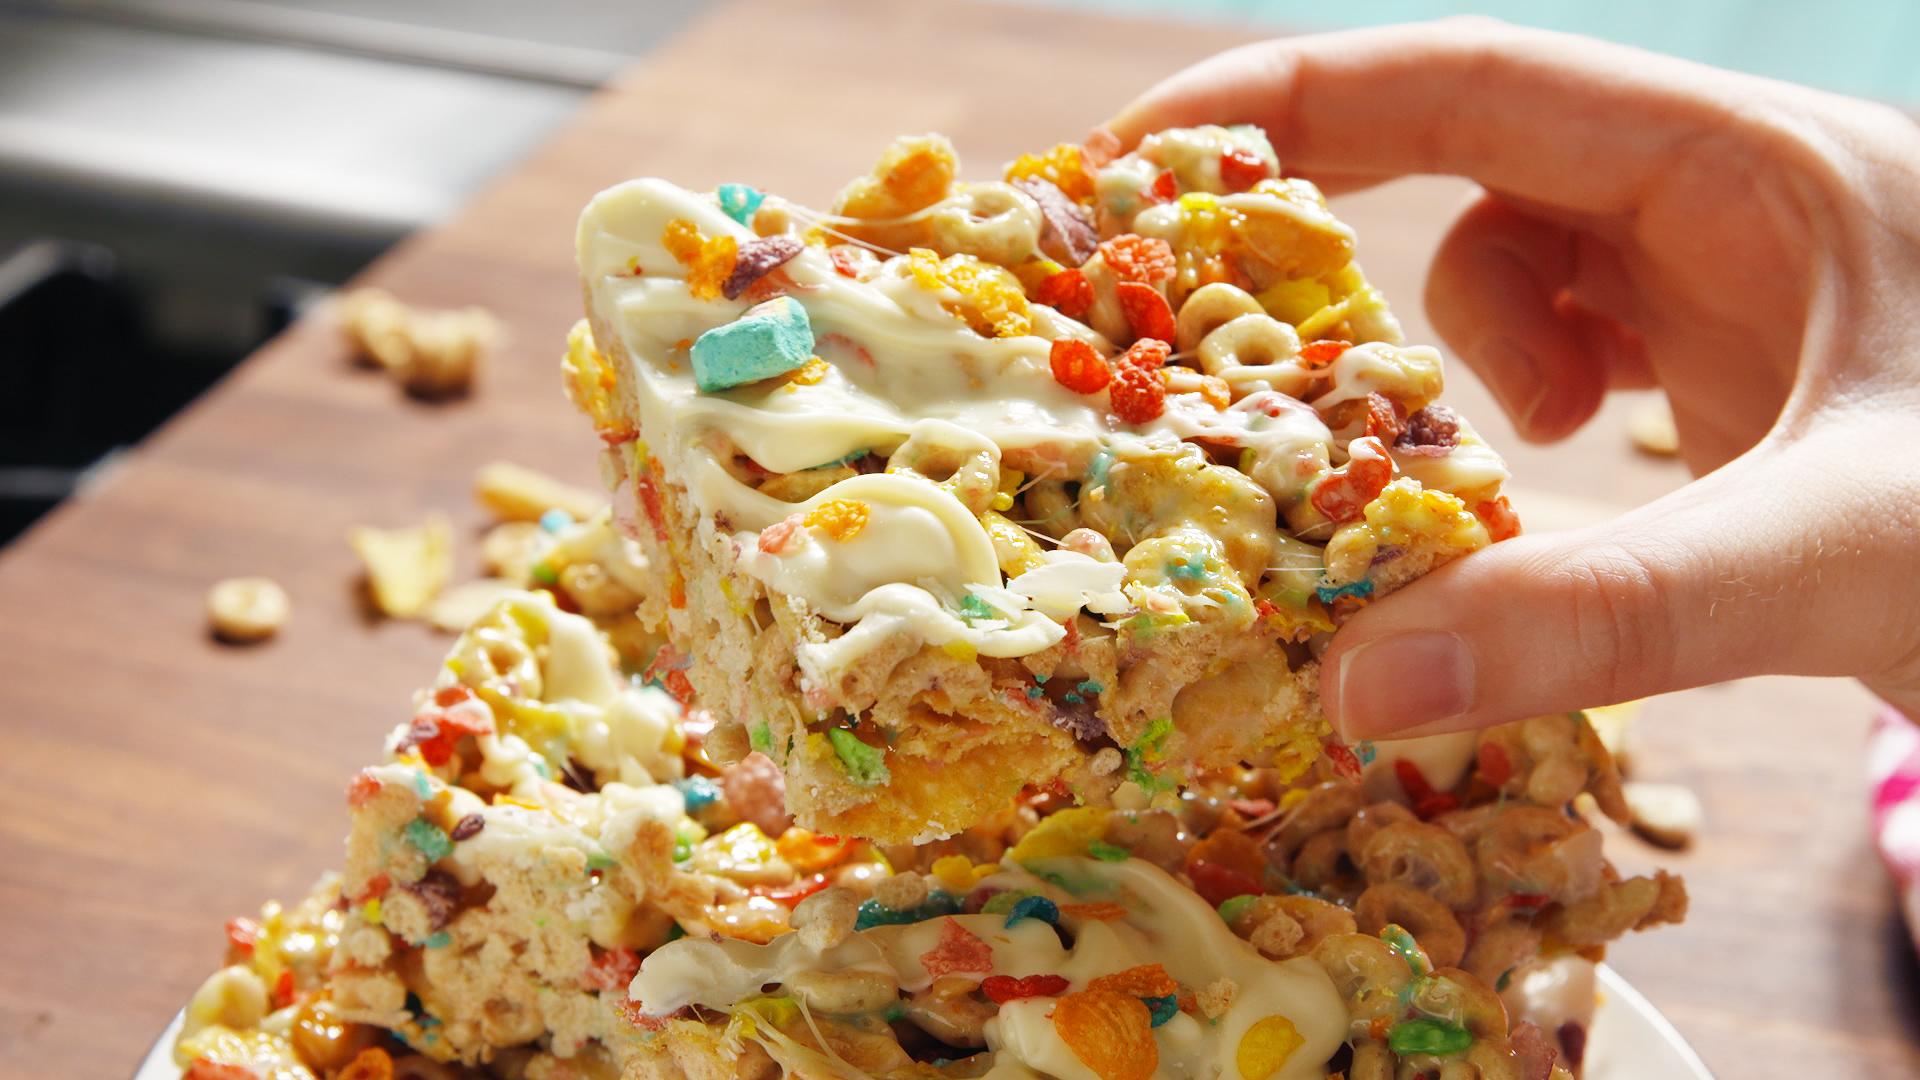 How to Make Cereal Killer Bars